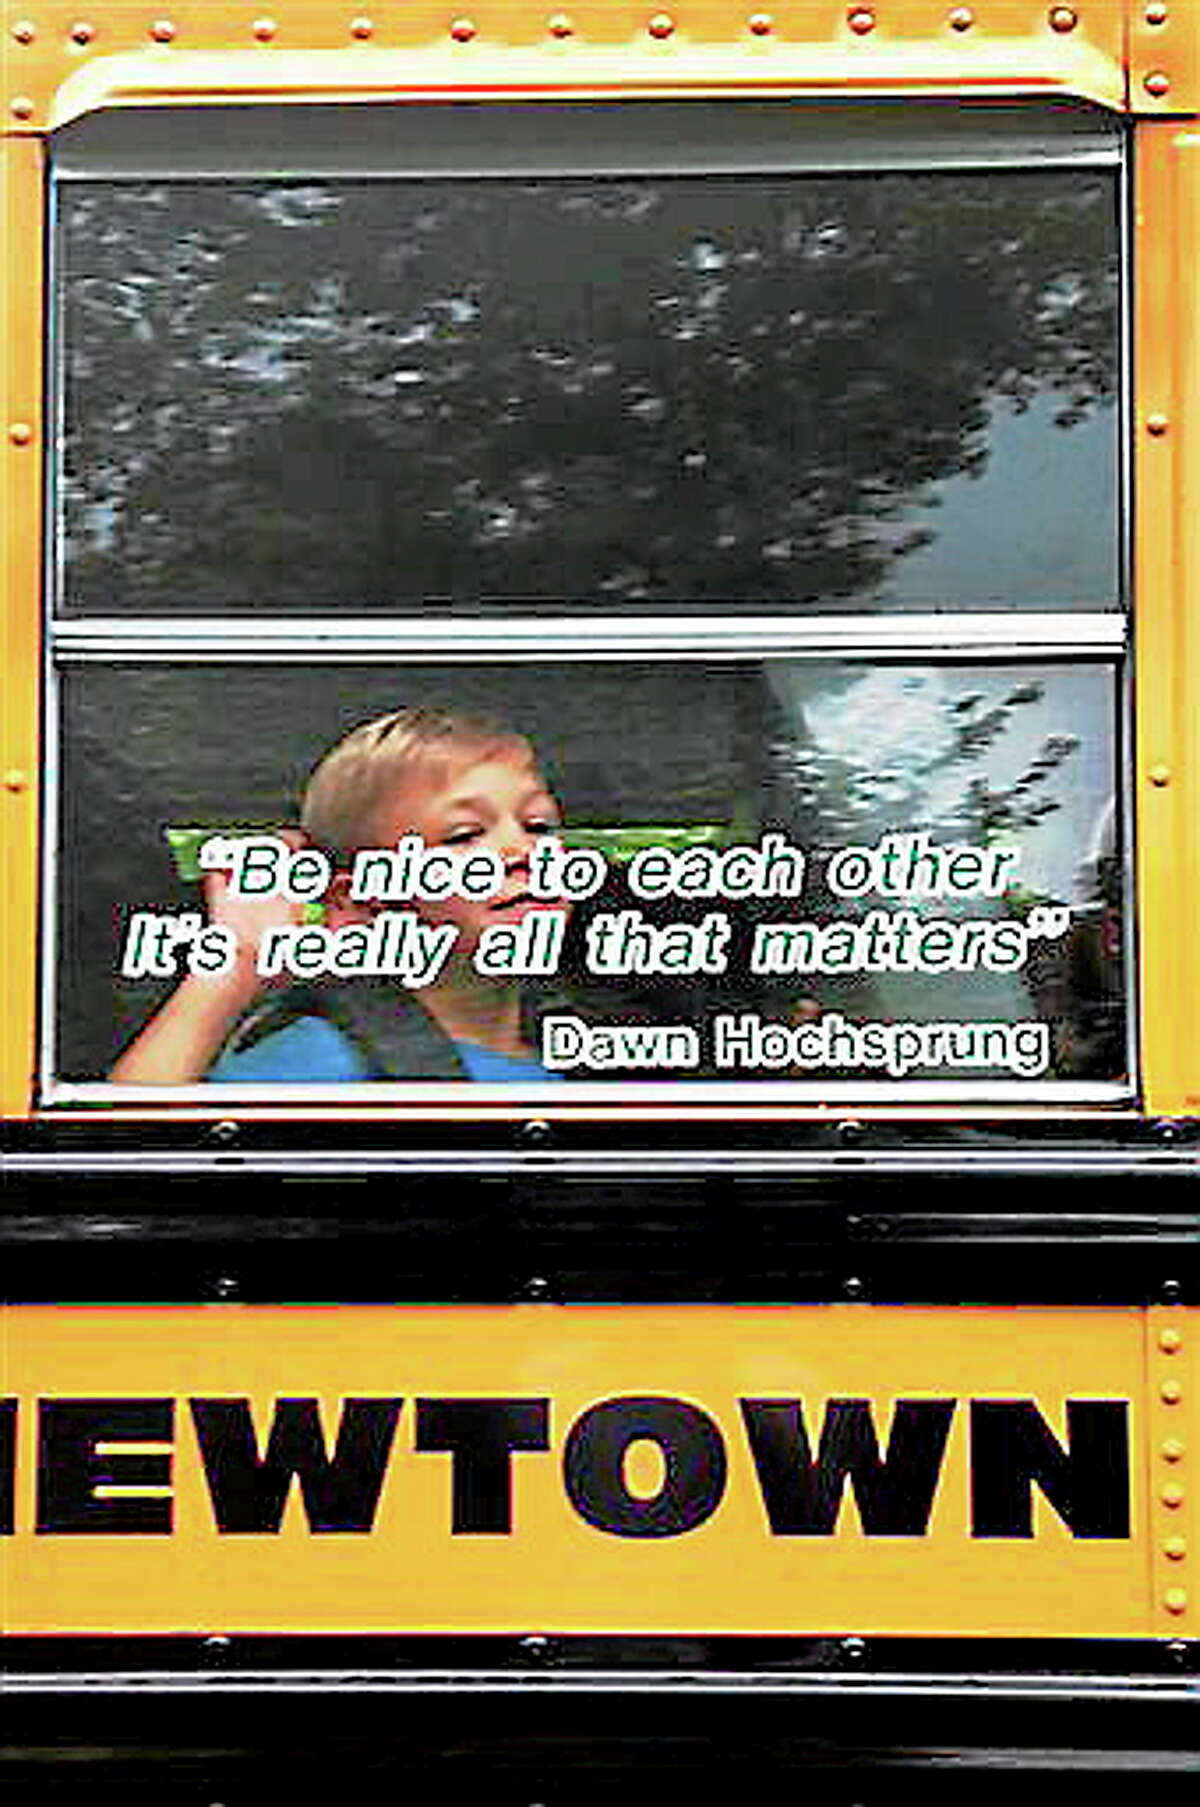 AP10ThingsToSee - In this photo provided by Craig Hoekenga, his son Trey Hoekenga, a kindergarten student at Sandy Hook Elementary School, waves from the school bus on the first day of school Tuesday, Aug. 27, 2013, in Newtown, Conn. On the bus window is a quote by the late principal, Dawn Hochsprung: